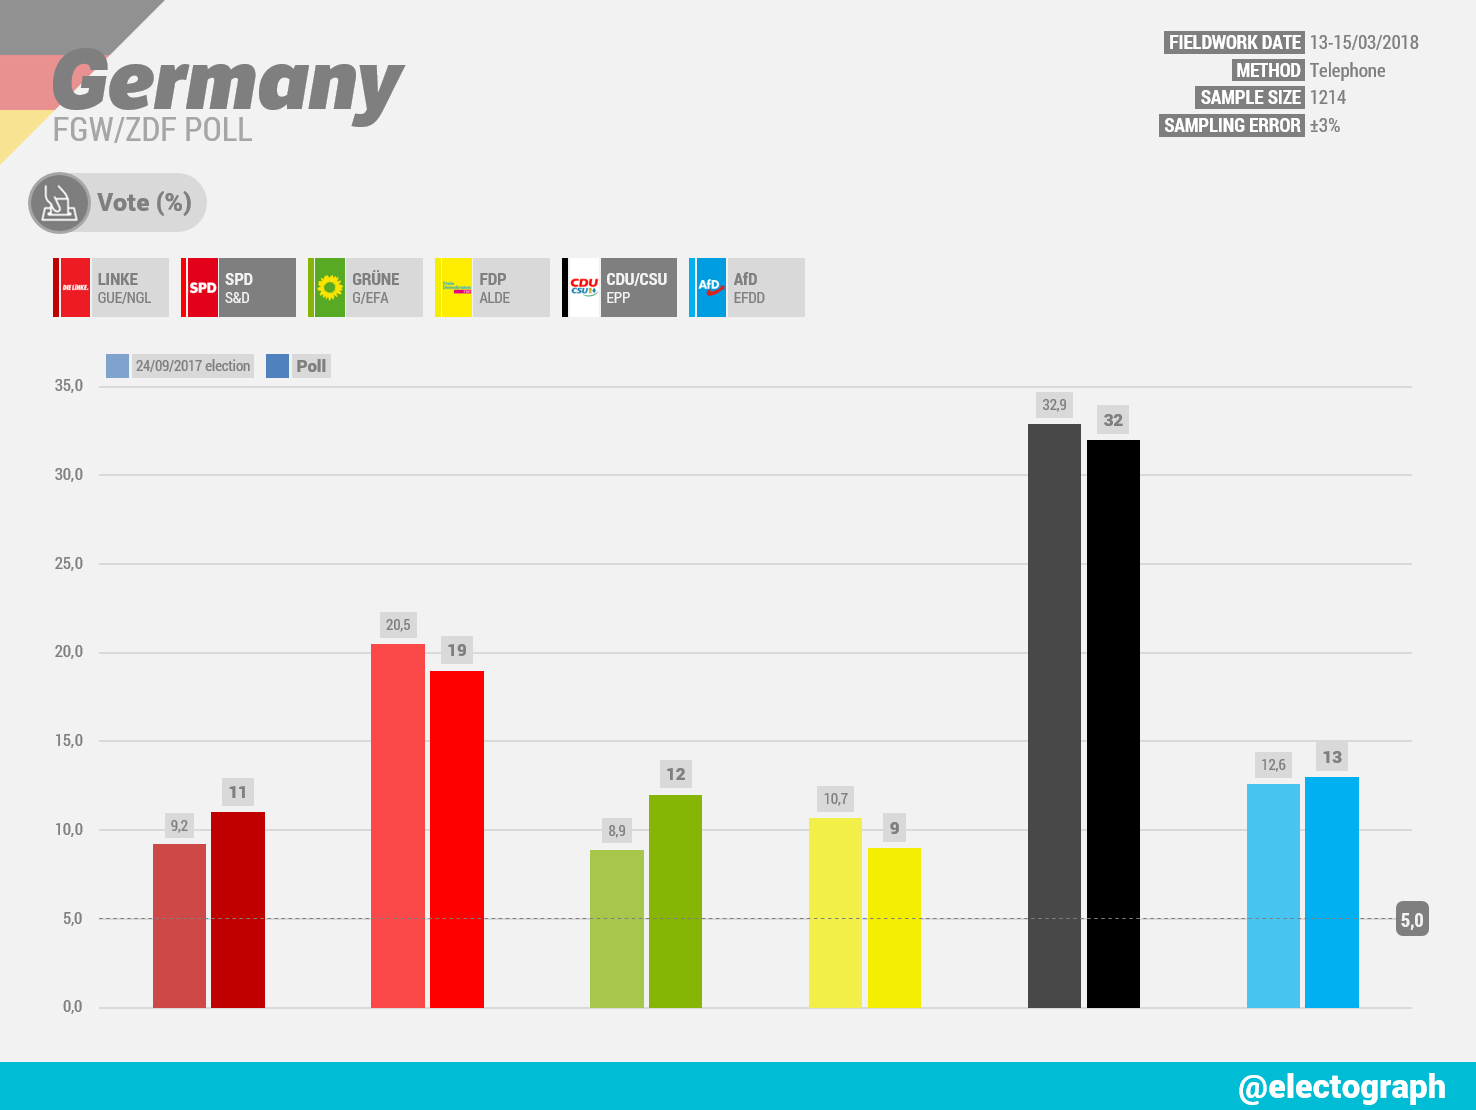 GERMANY FGW poll chart for ZDF, March 2018